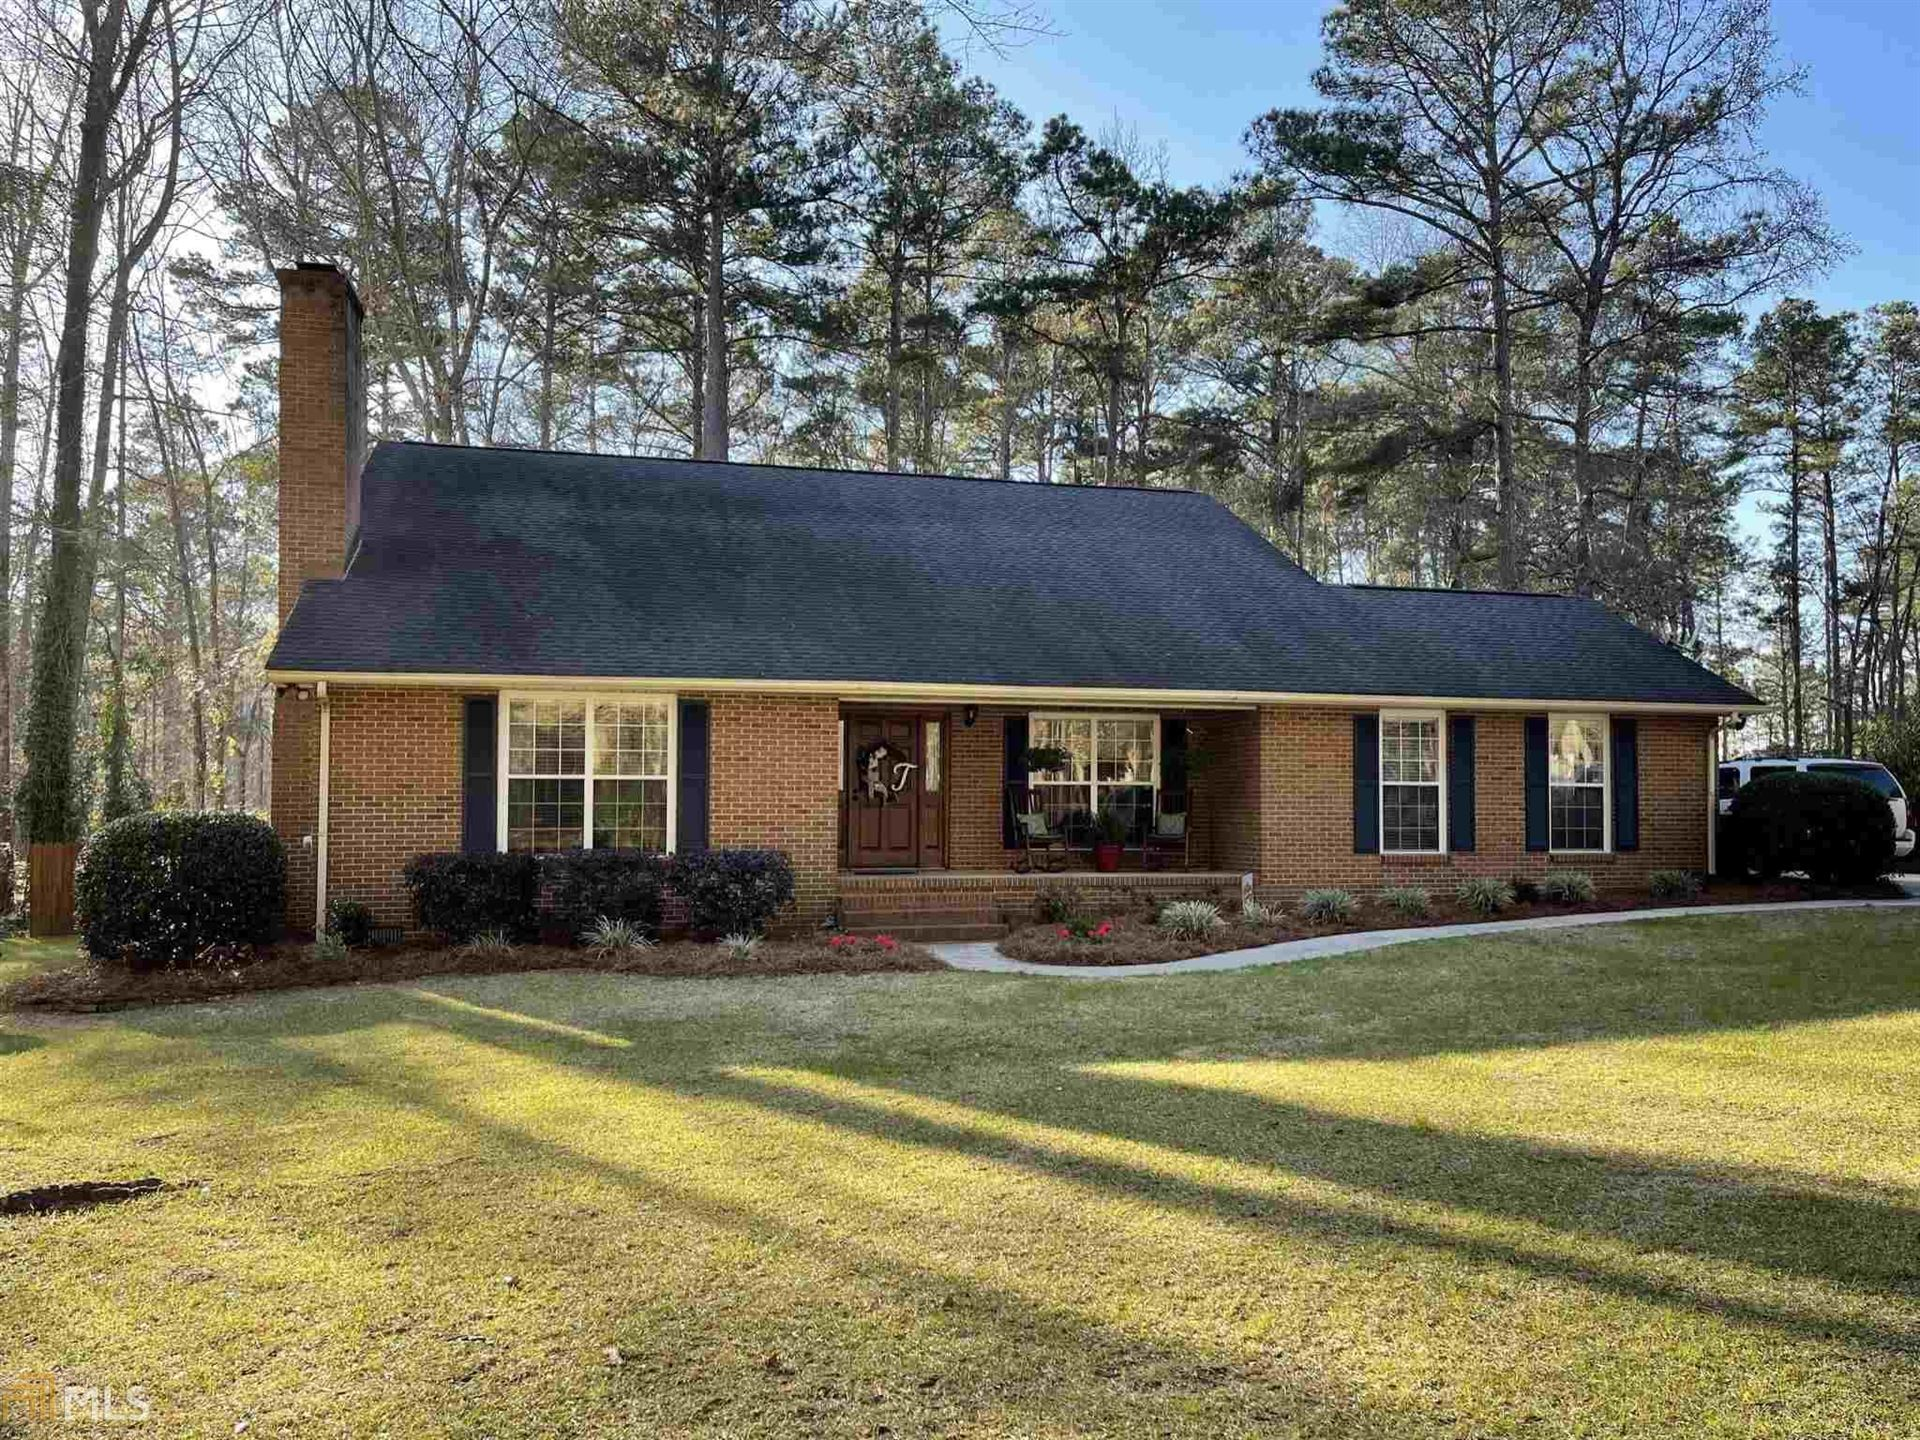 69 Club Forest Dr, Tennille, GA 31089 - MLS#: 8954887